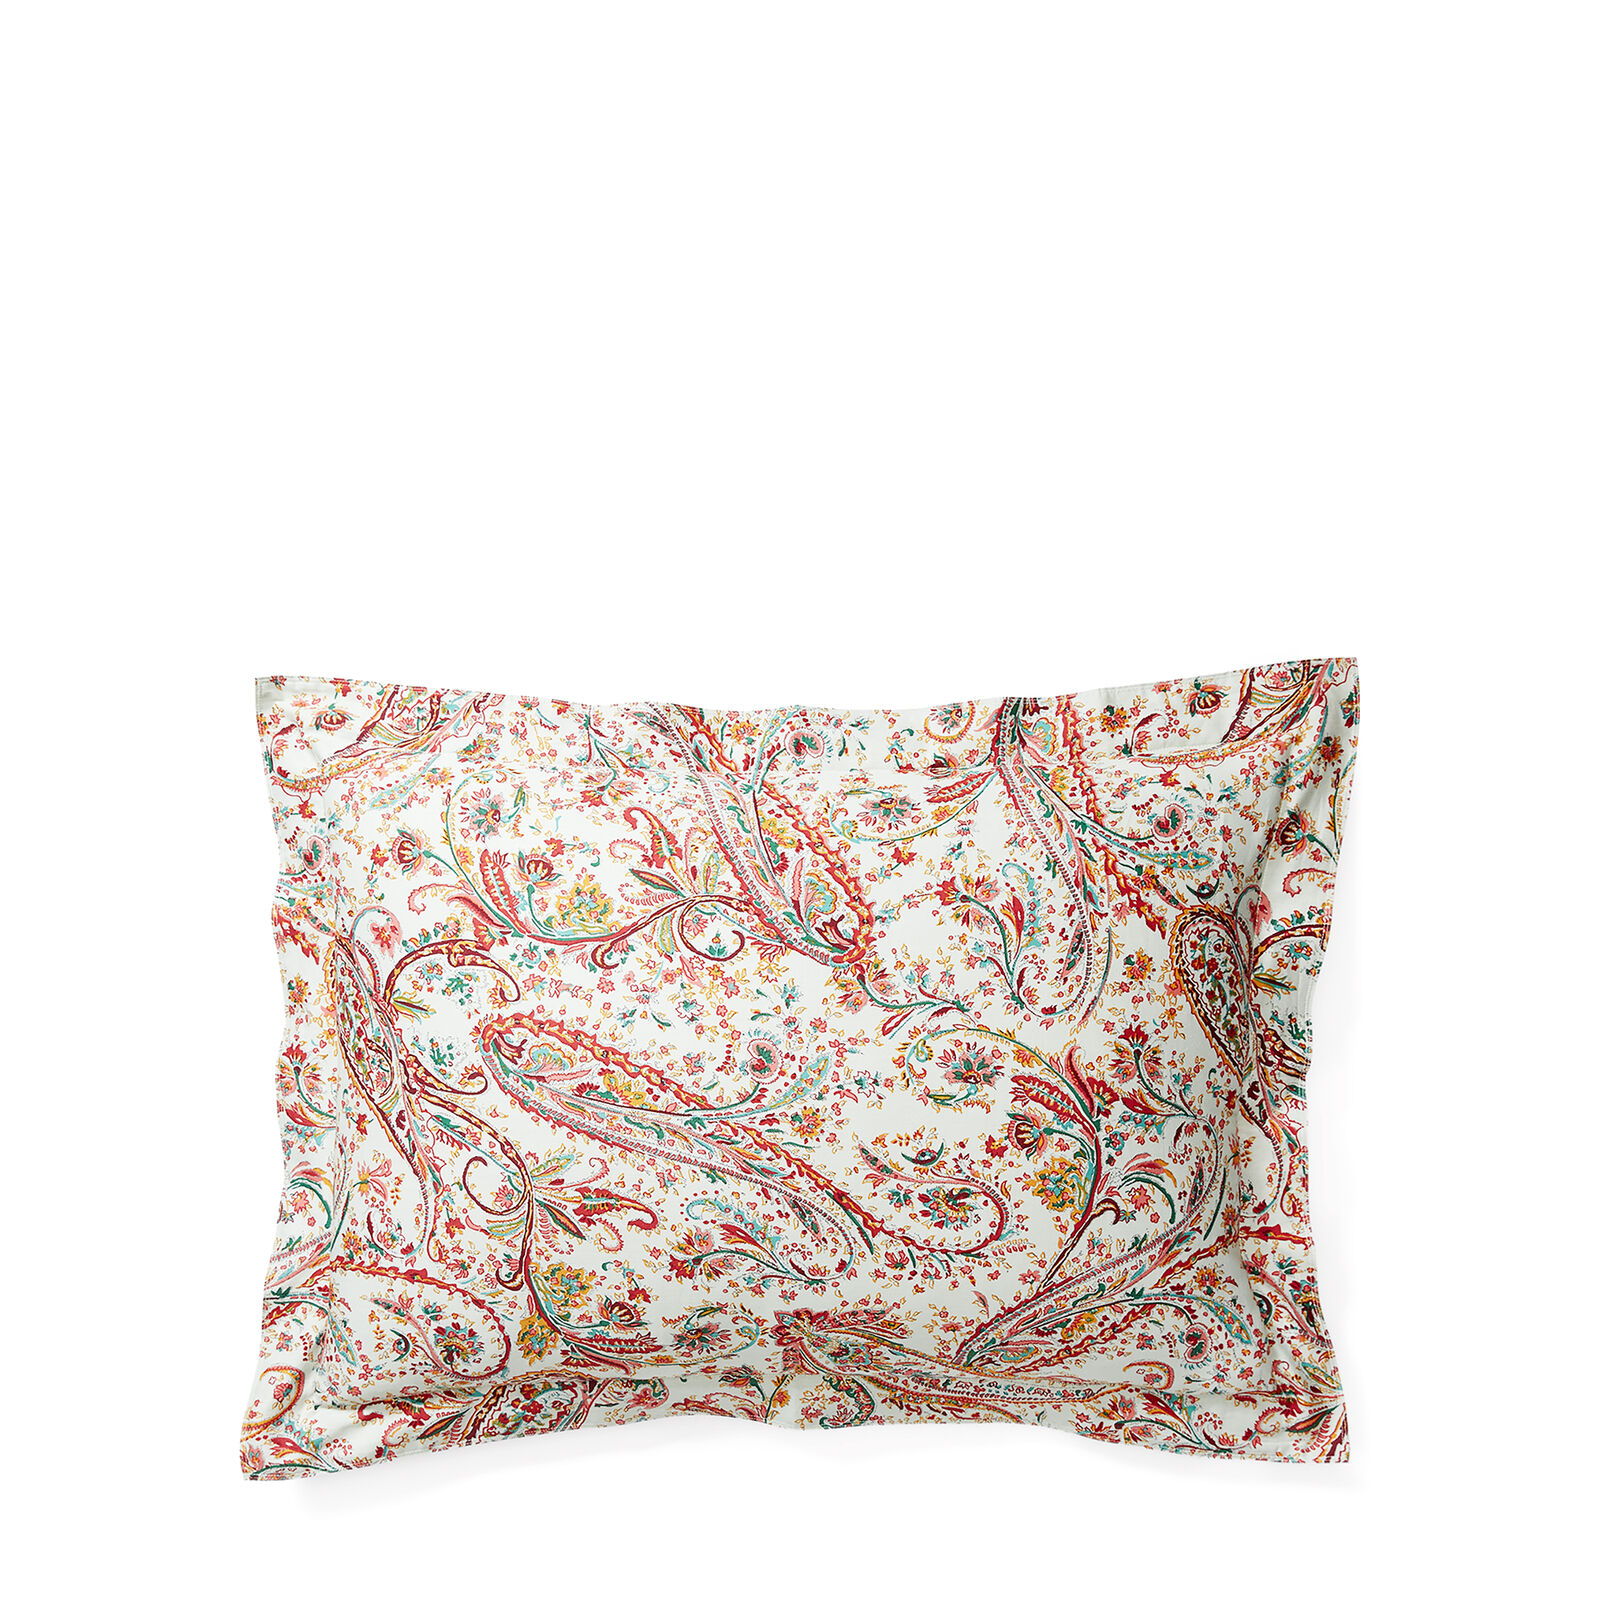 RALPH LAUREN = MONTECITO CALISTA PILLOWCASE PAIR 200TC 100% COTTON 60% OFF